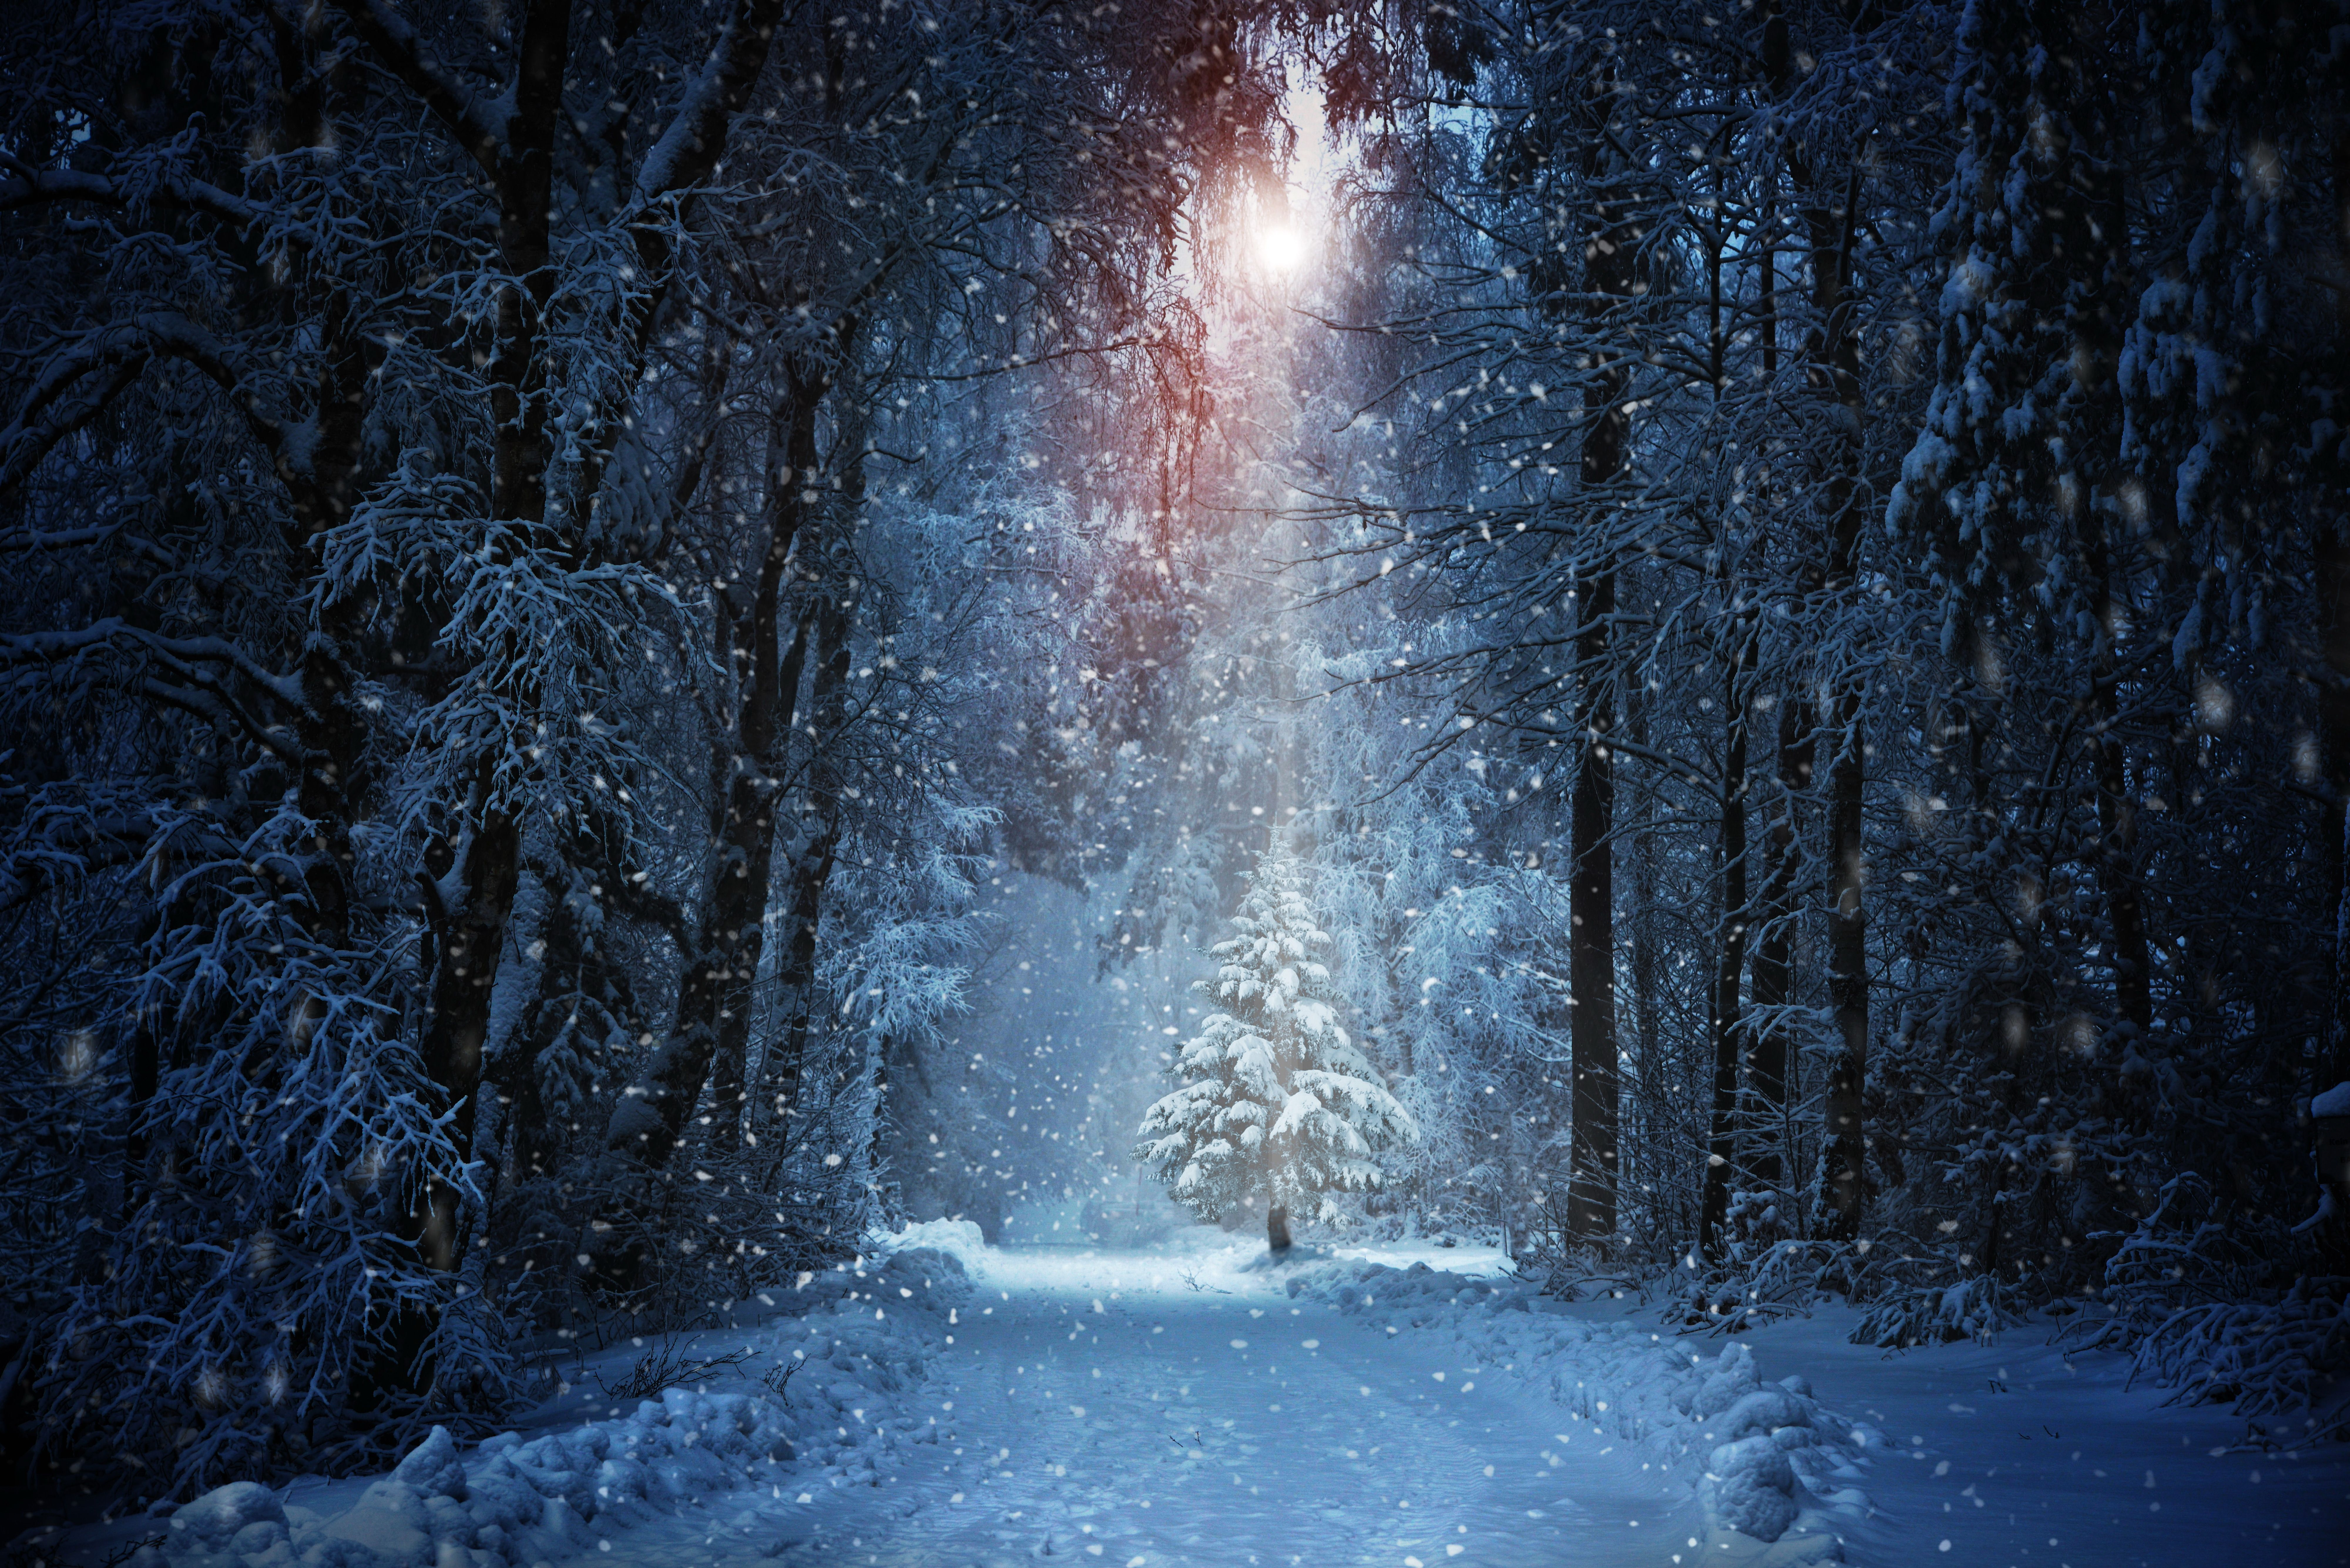 672300 Jpg 8000 5339 Winter Backdrops Christmas Photography Backdrops Winter Pictures